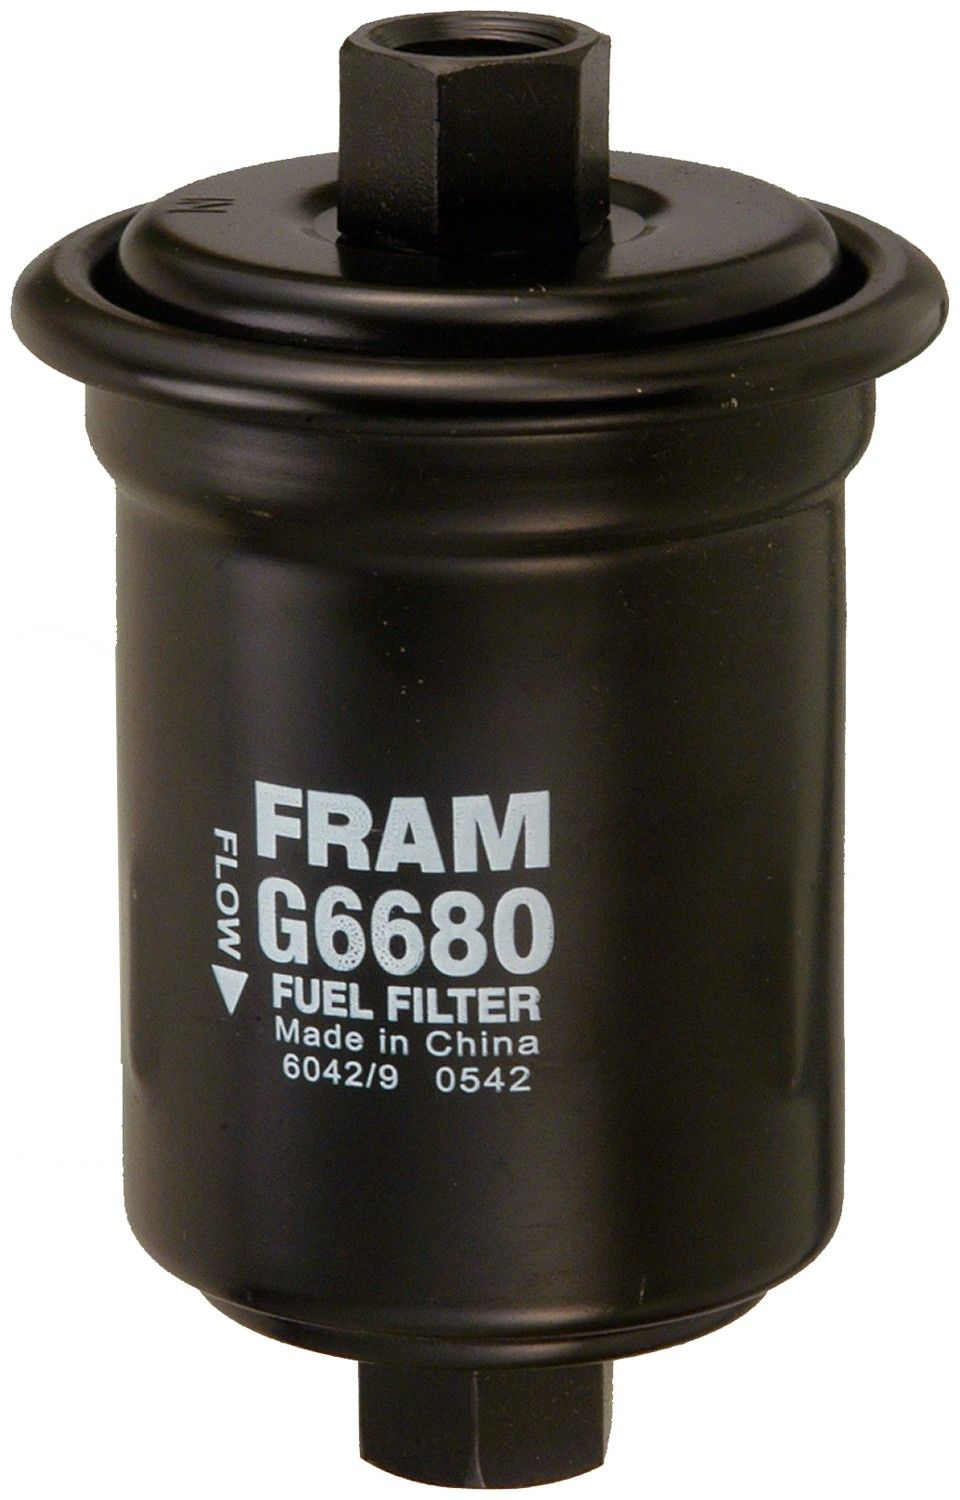 1994 Hyundai Sonata Fuel Filter 4 Cyl 2.0L (Fram G6680) In-Line Fuel Filter  Unit box product .